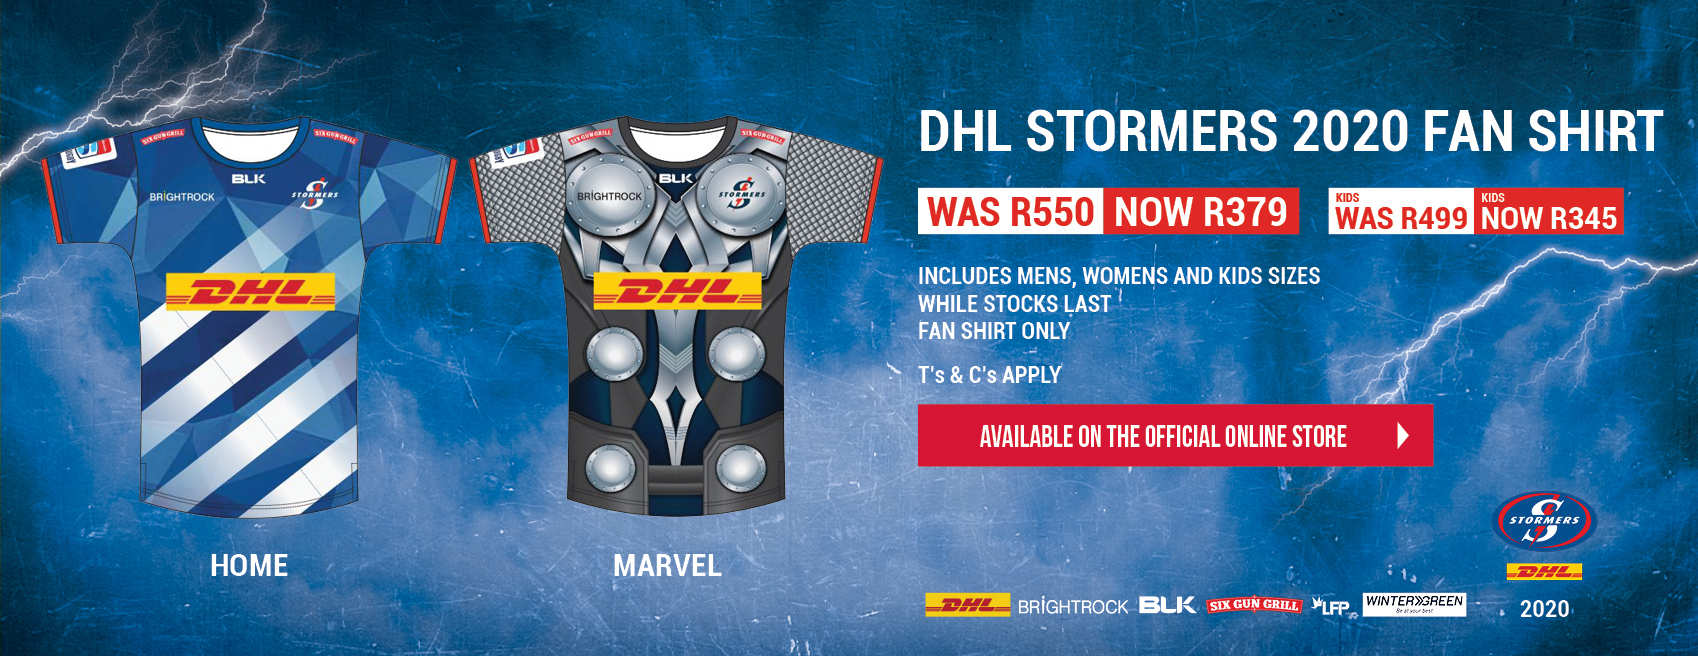 stormers sale_1